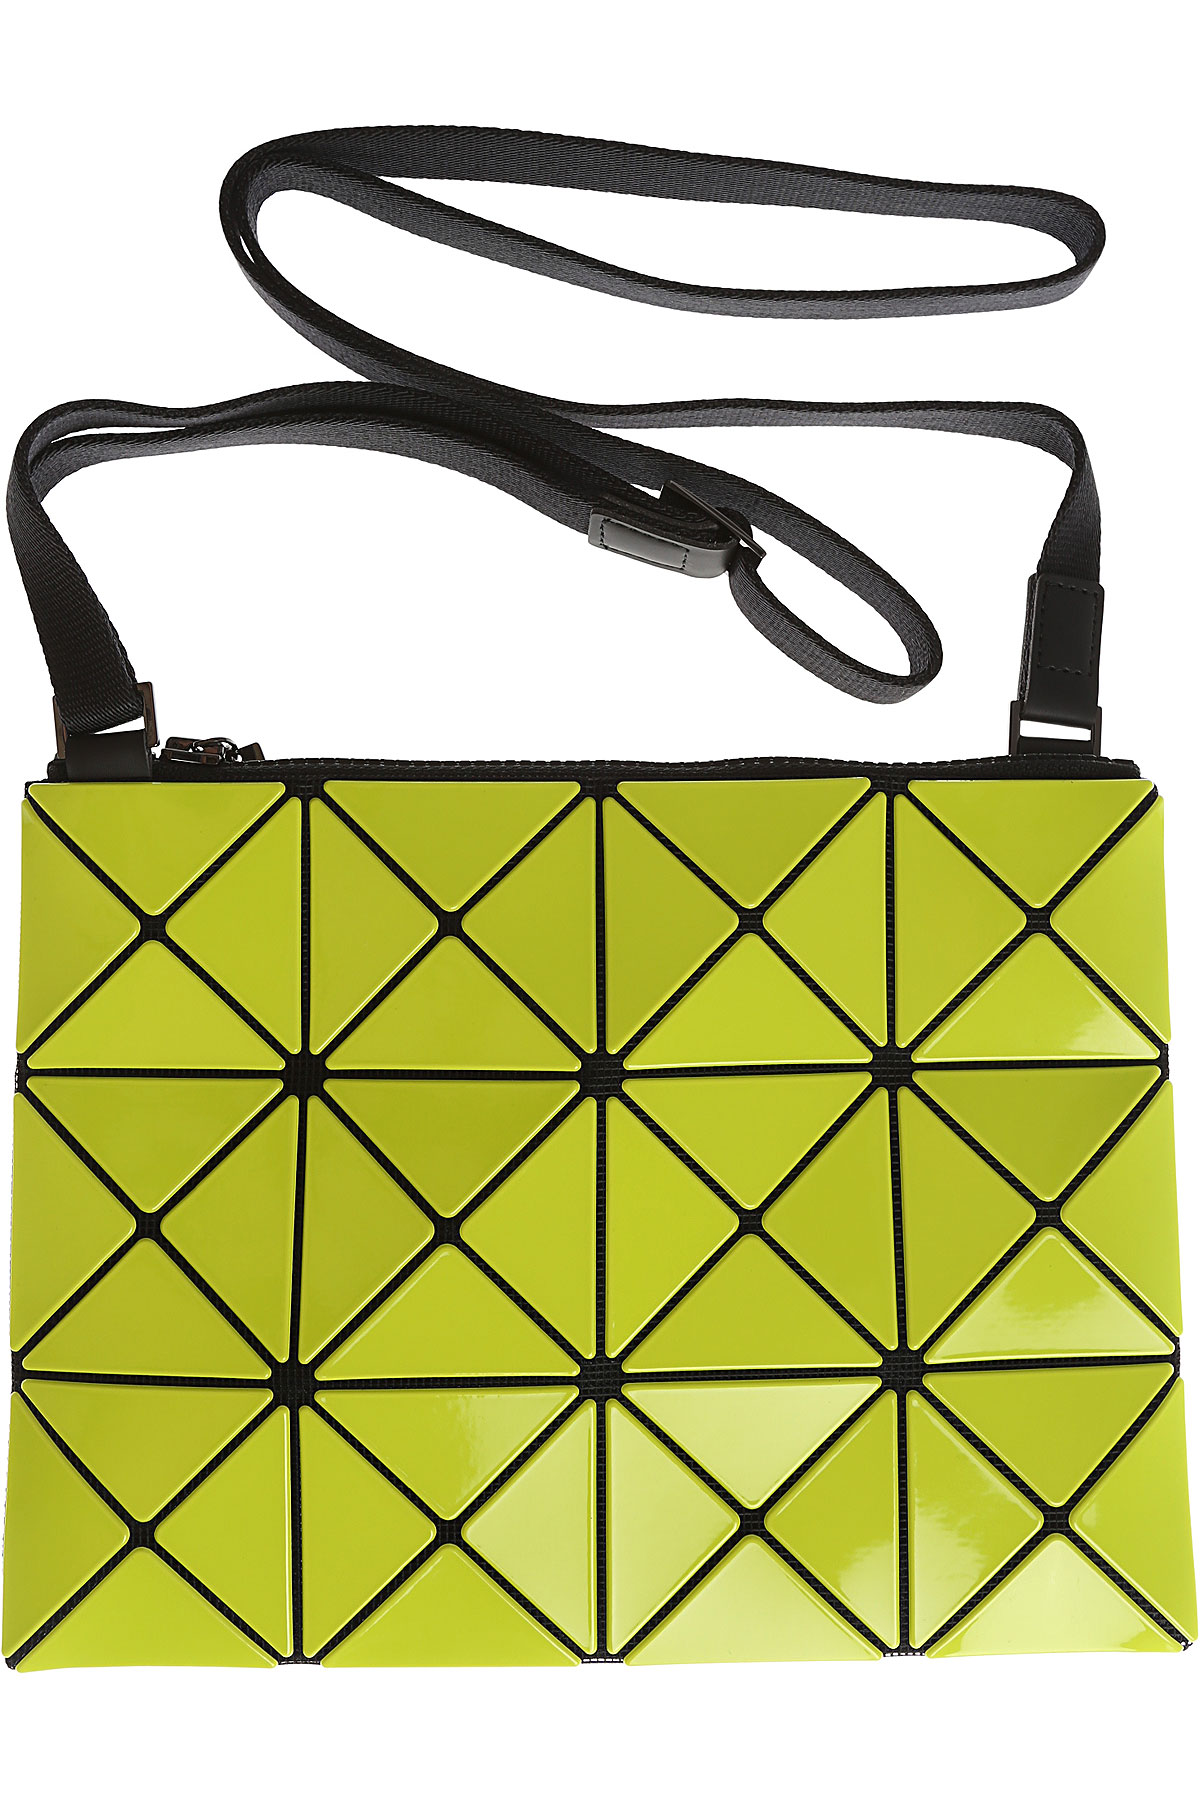 Image of Issey Miyake Shoulder Bag for Women, Bao Bao, Lime, polyester, 2017